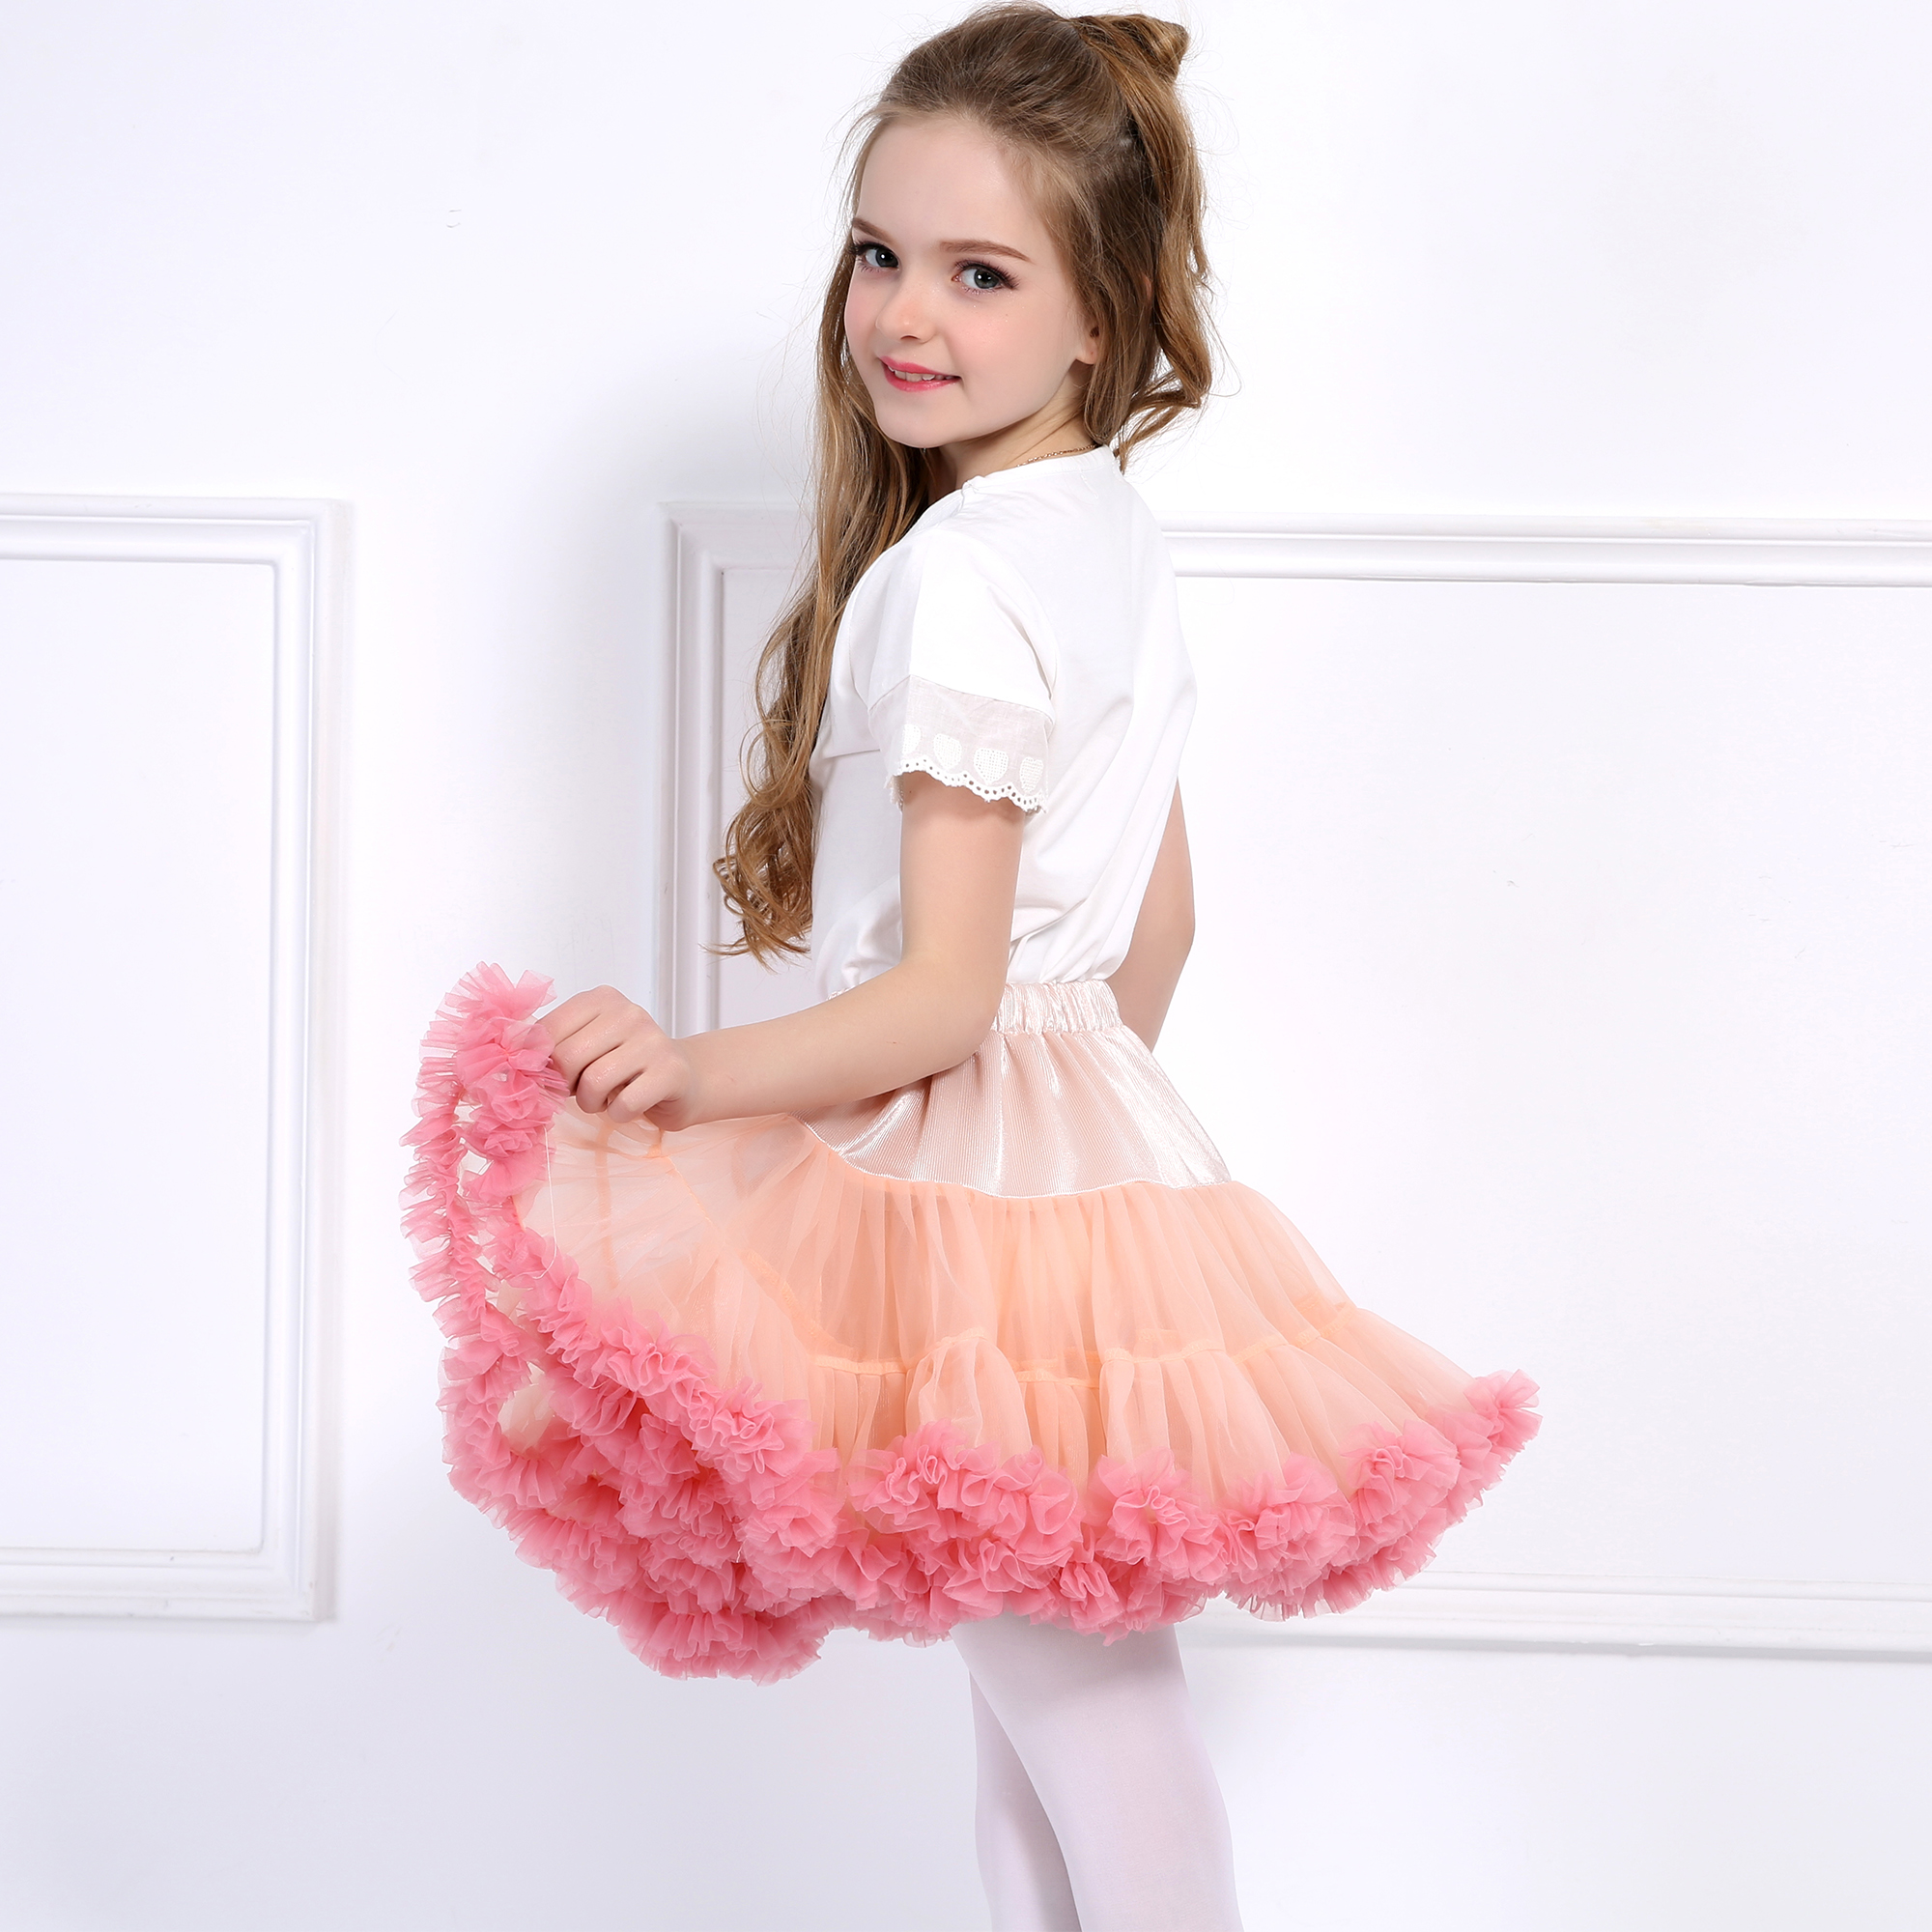 2pcs-Baby-Girls-Tutu-Skirts-Headband-Fluffy-Kids-Pettiskirts-Children-Clothes-Princess-Dance-Party-Tulle-Petticoat-Wholesale-3